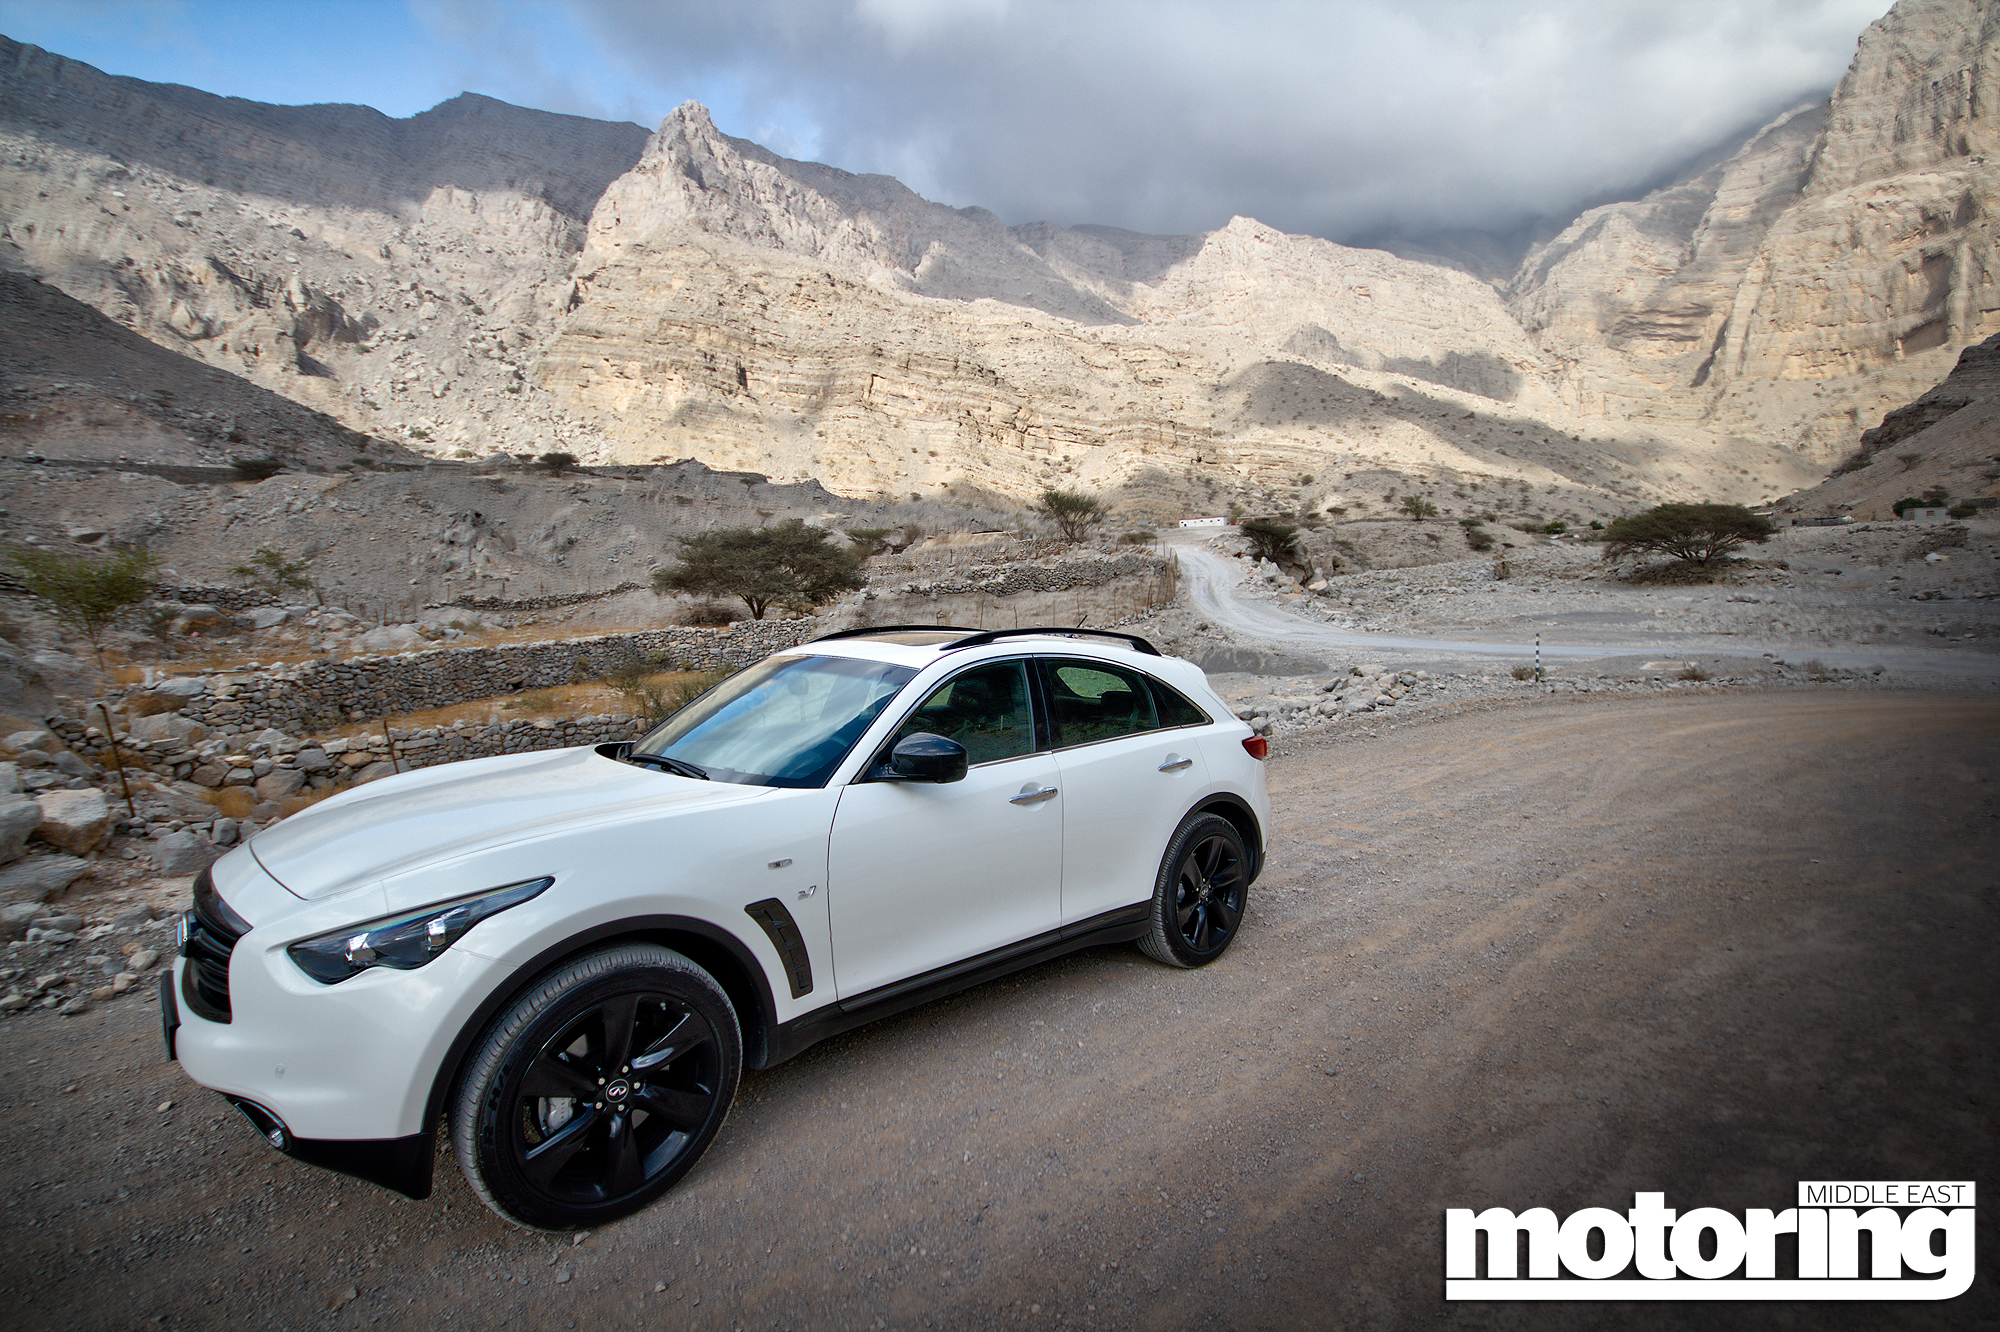 What If Two Roads Are Illusion What If >> 2015 Infiniti QX70 S ReviewMotoring Middle East: Car news, Reviews and Buying guides